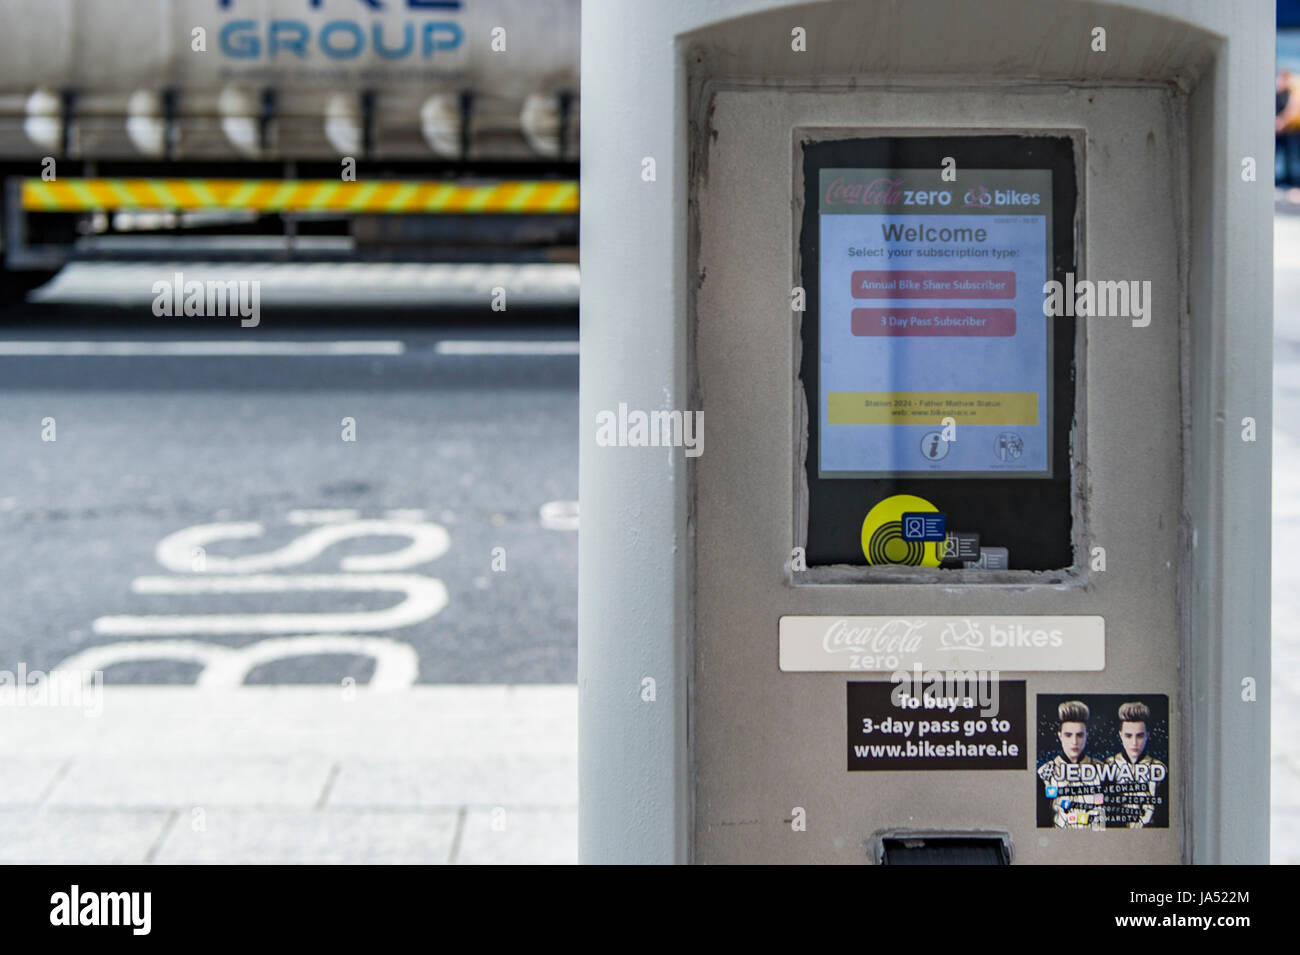 Coca Cola sponsored Bikeshare payment console in Cork, Ireland. - Stock Image